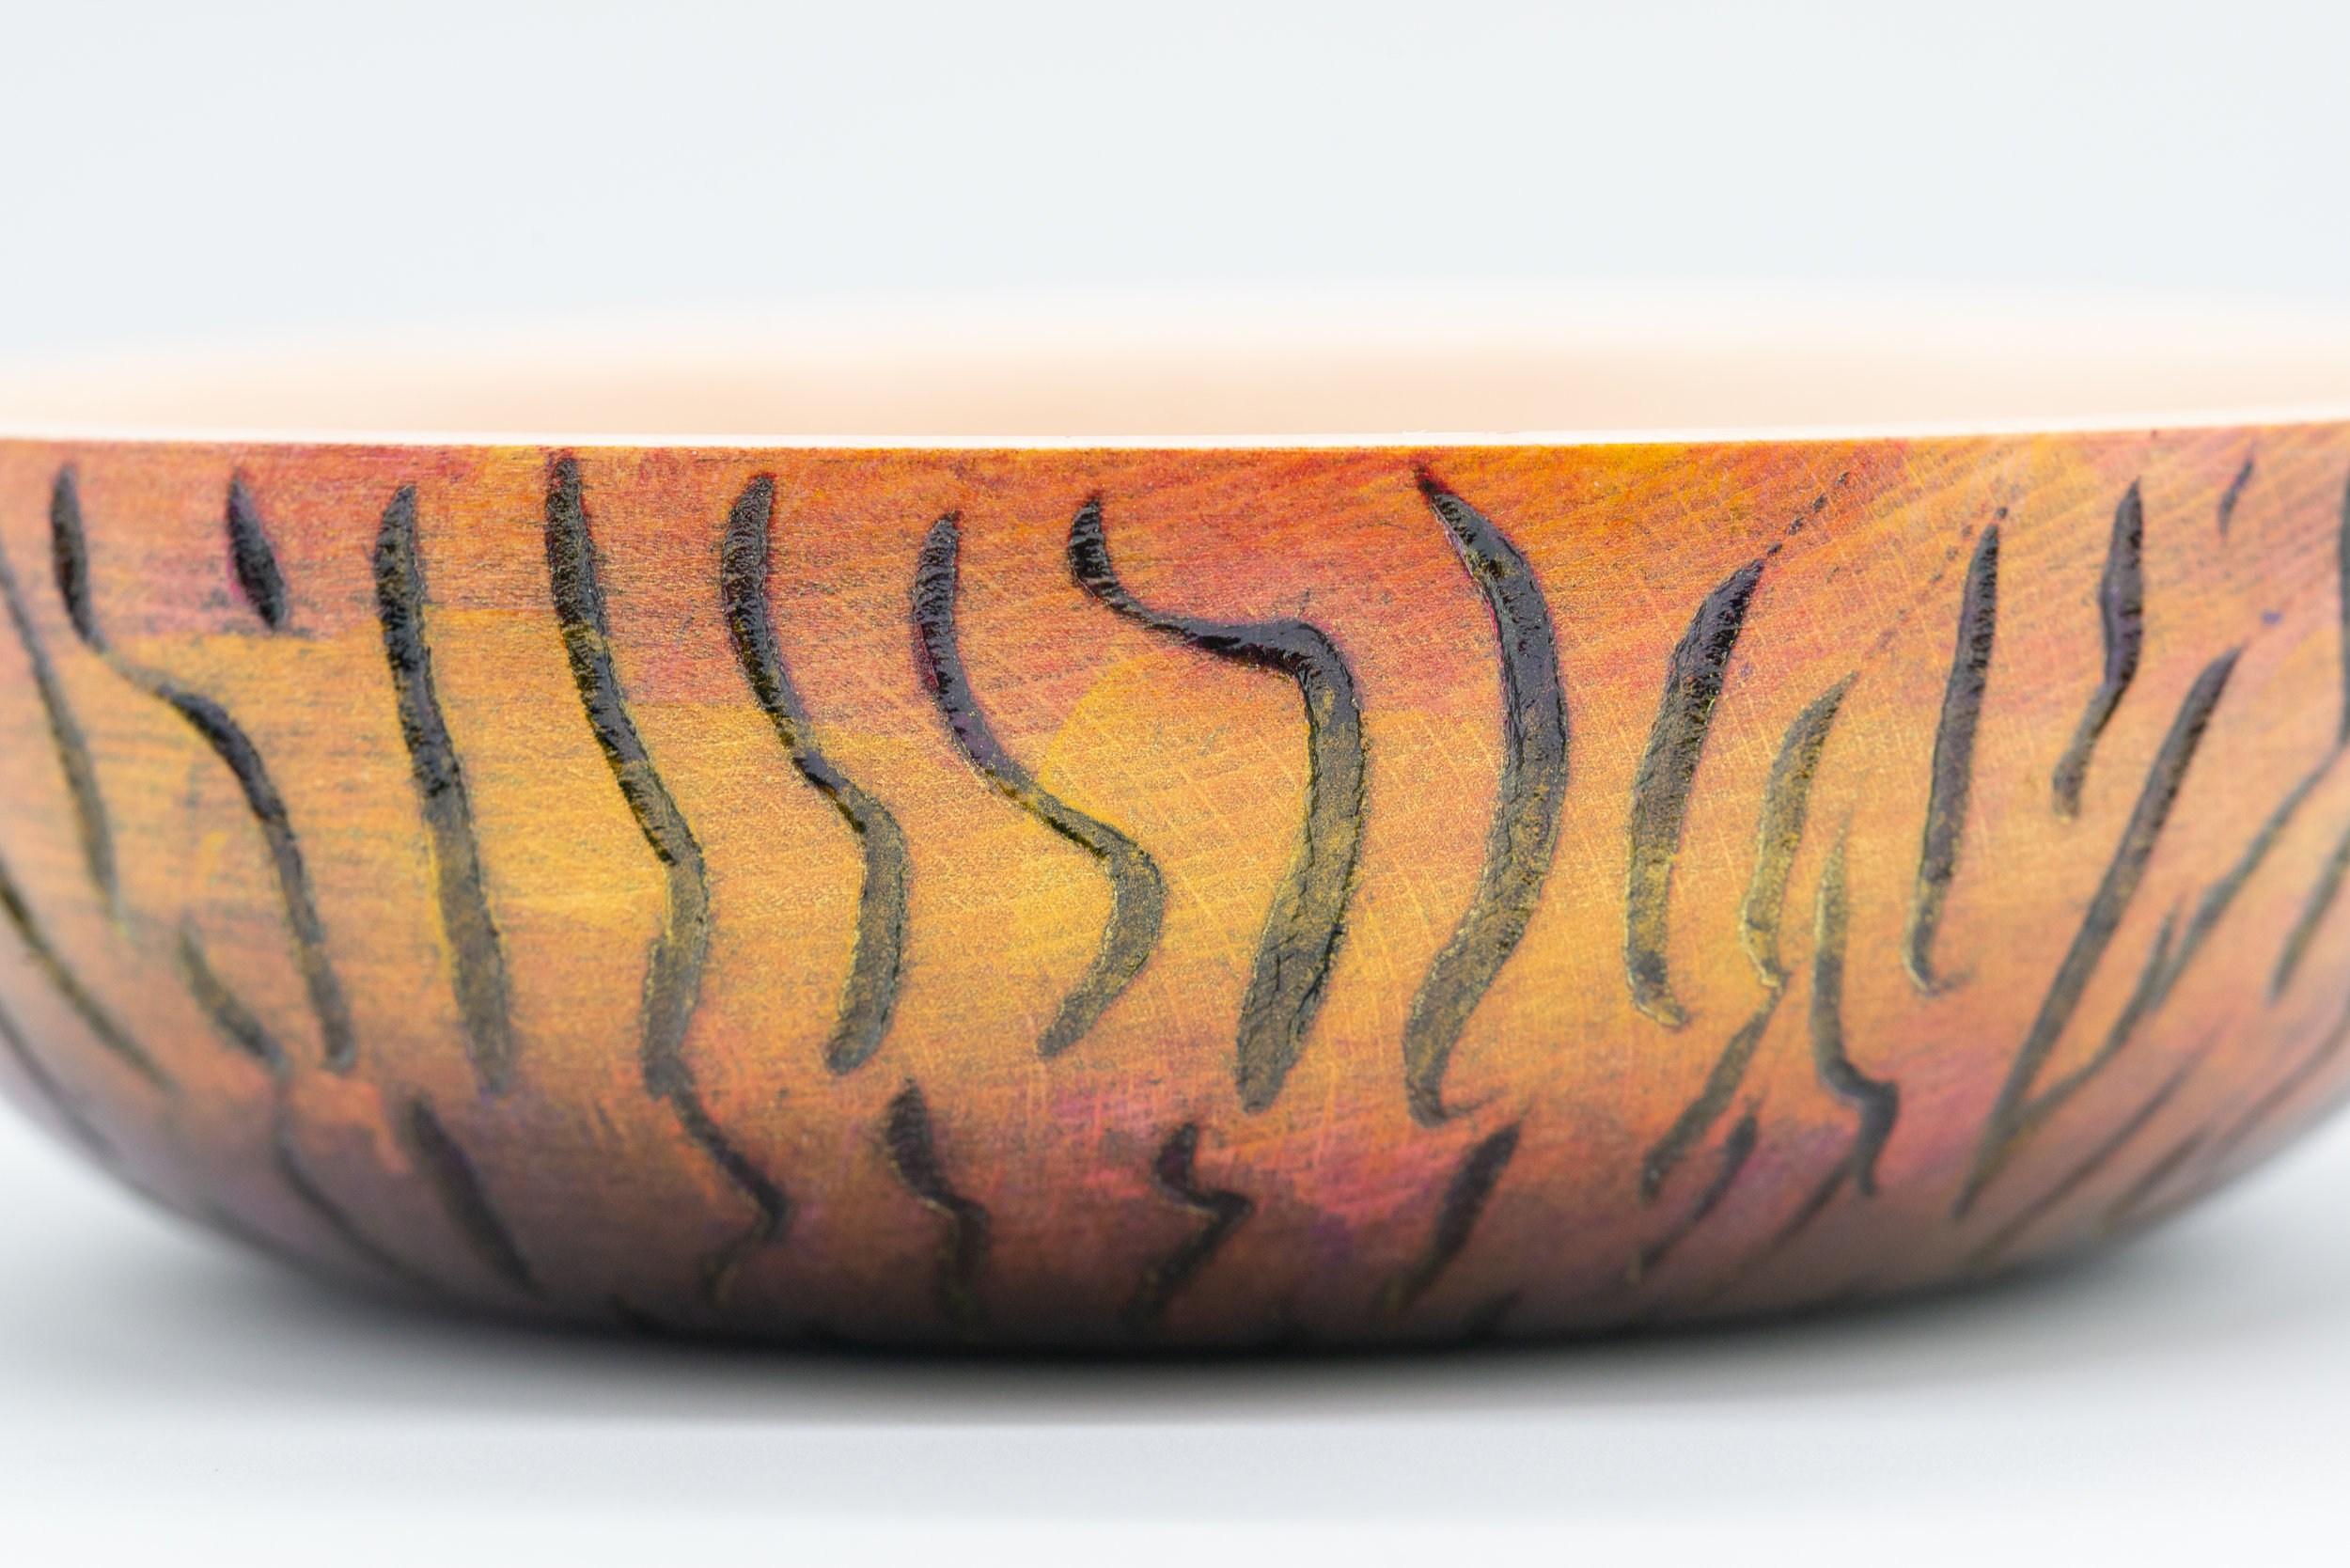 The 'Tiger' striped bowl - YouTube Video Available